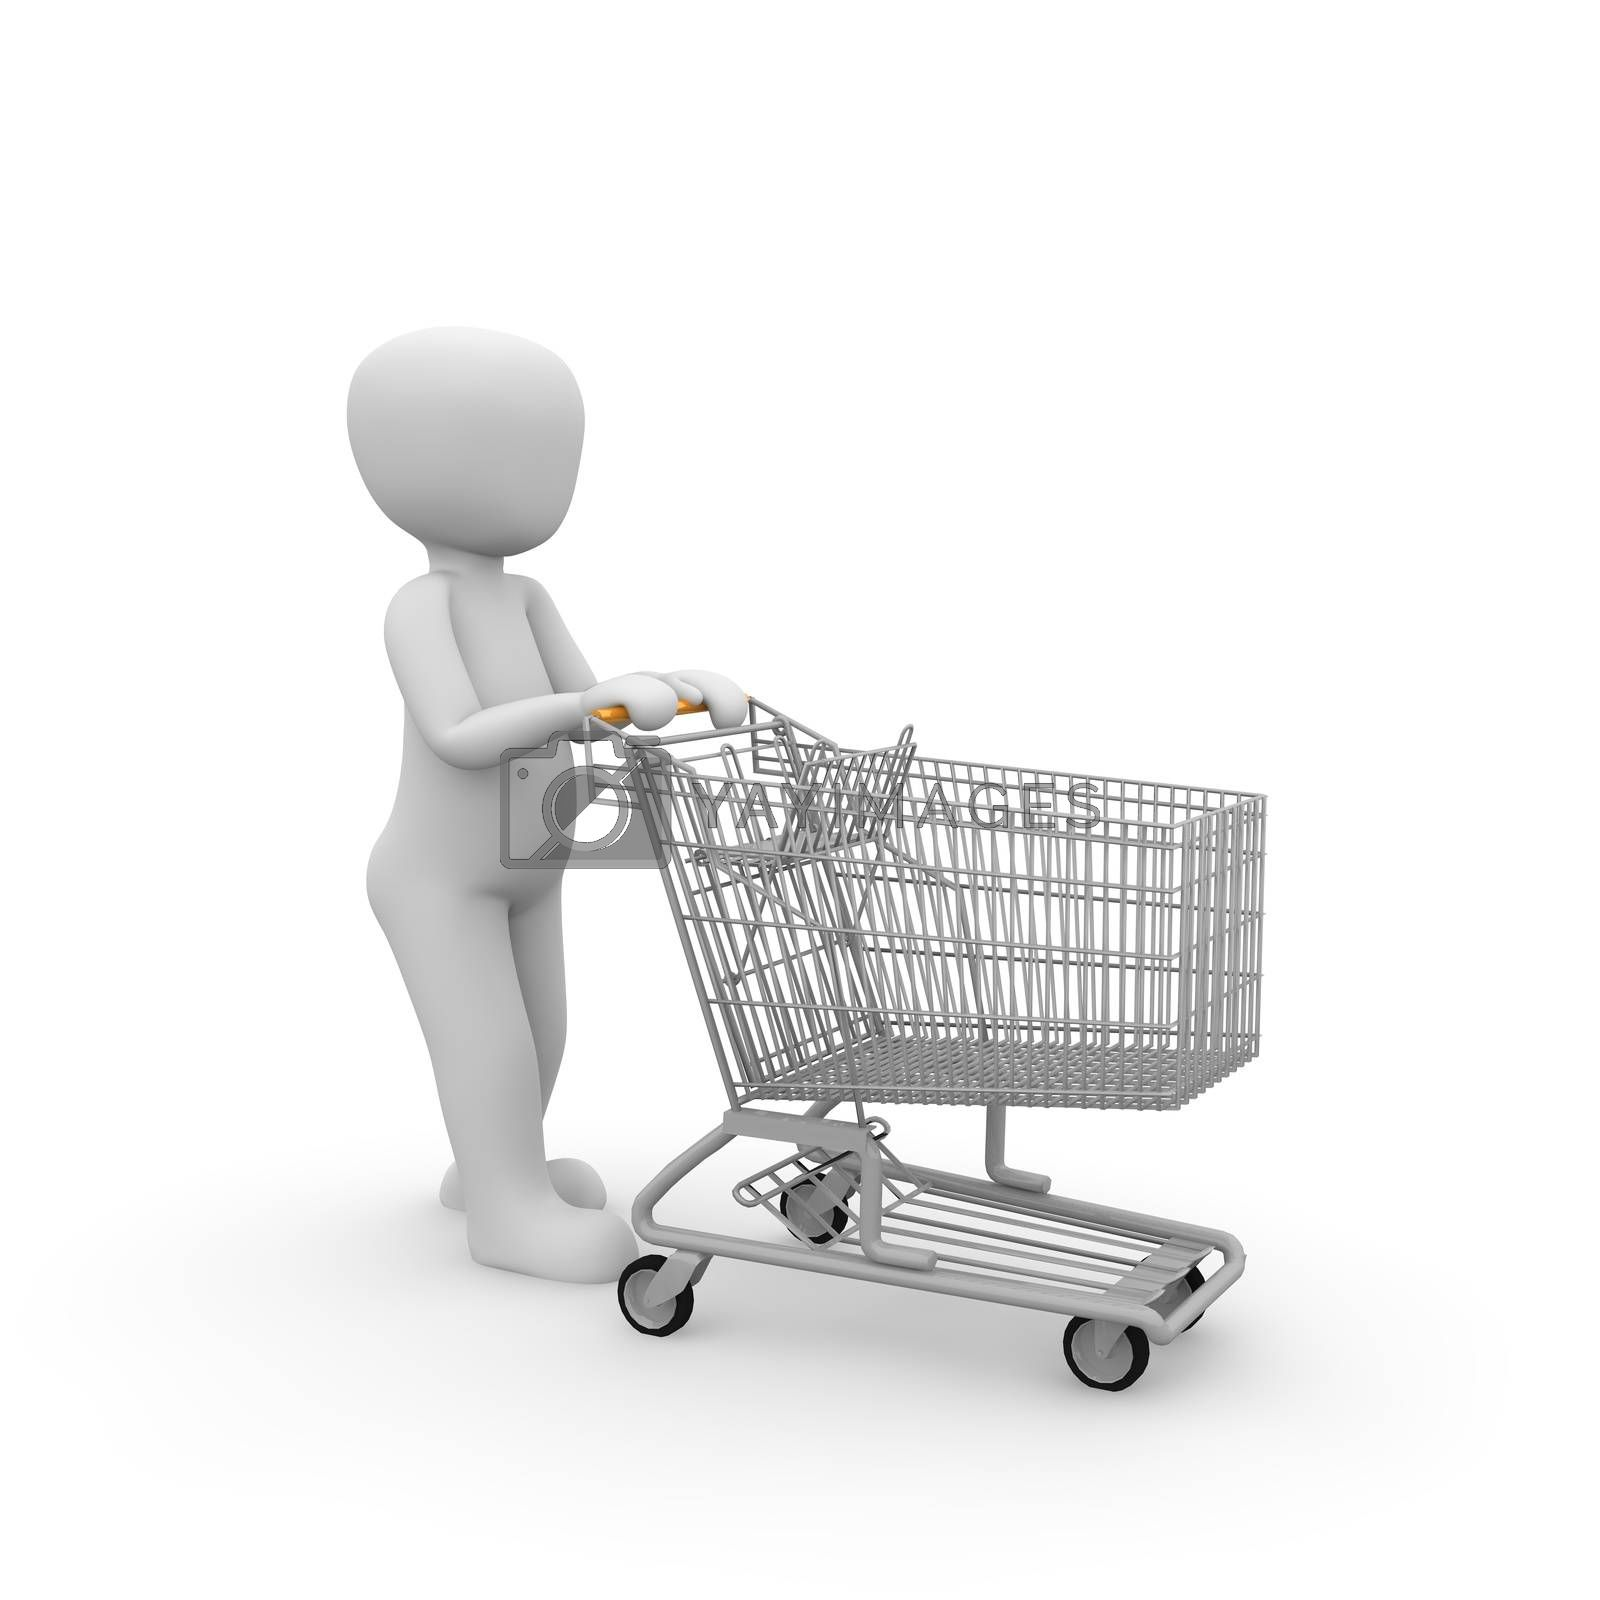 Royalty free image of shopping cart 3 by 3DAgentur